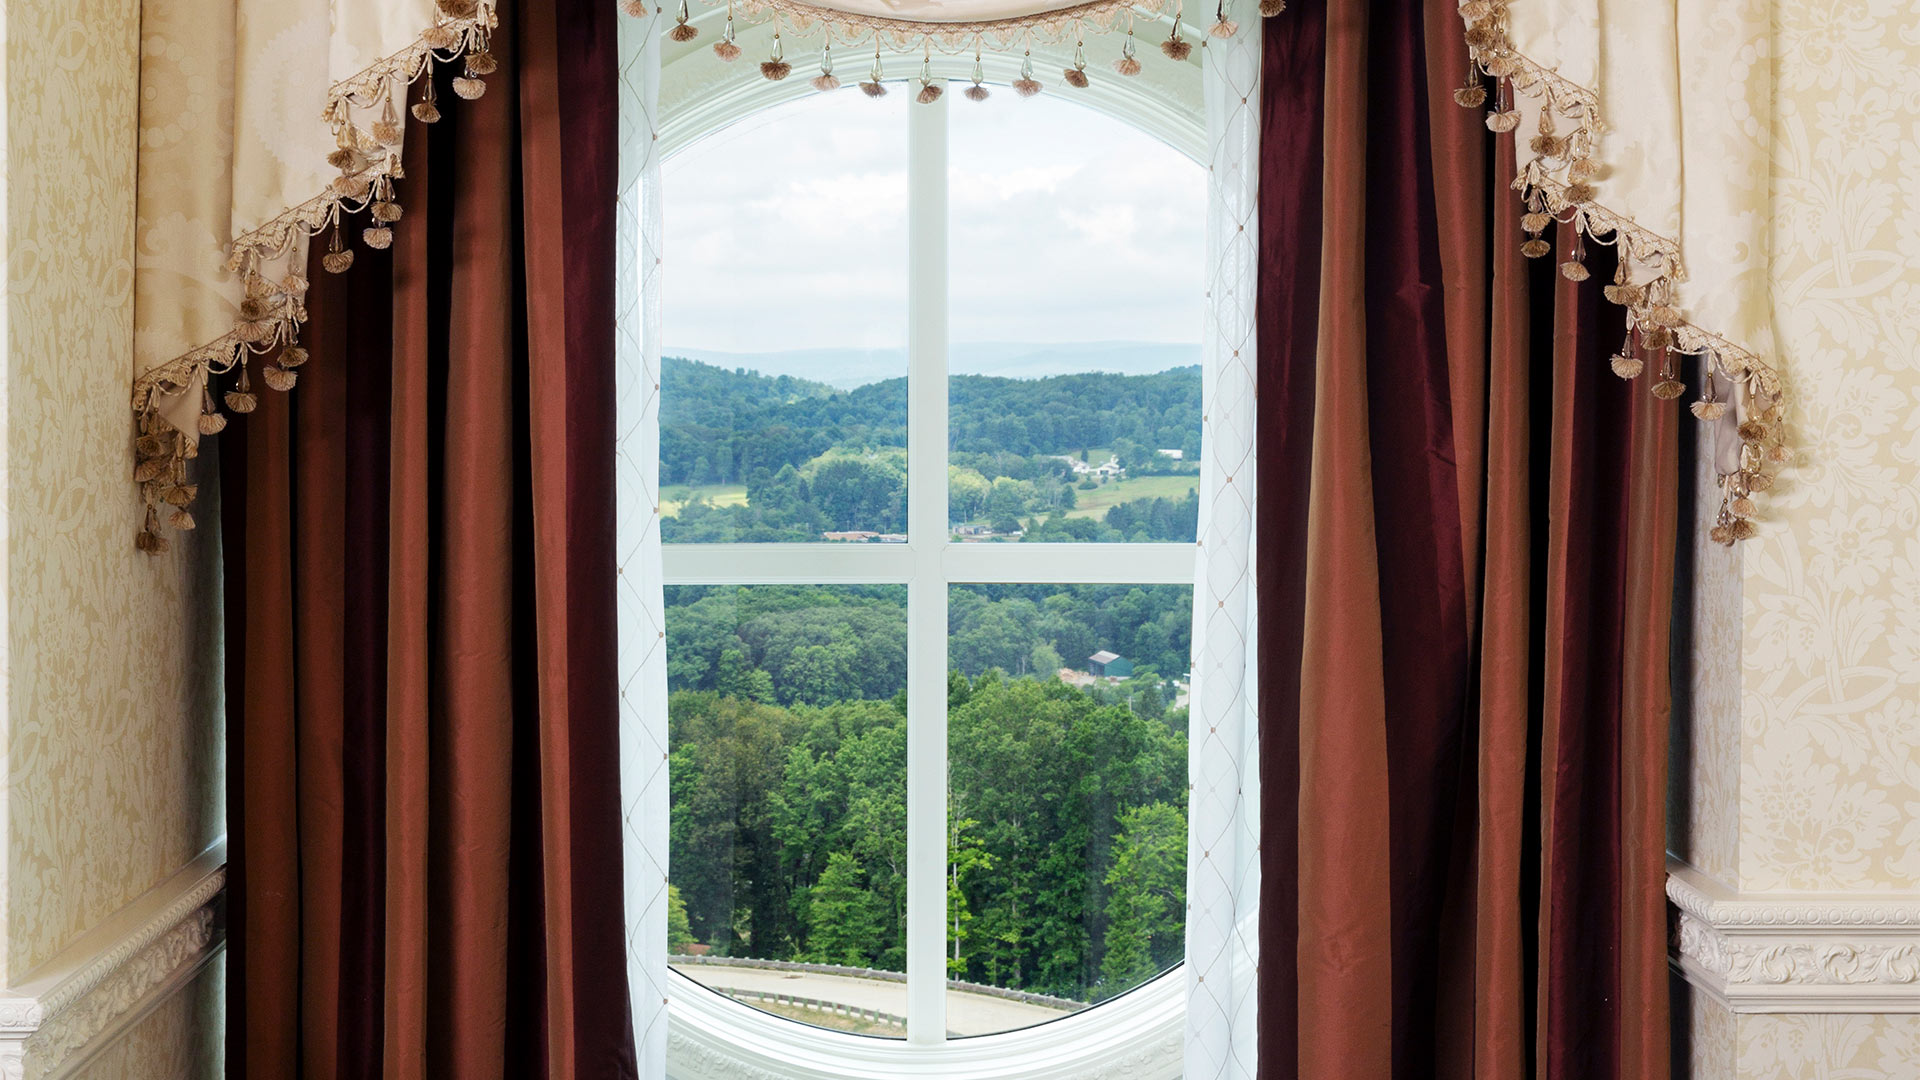 large window overlooking the resort grounds. beautiful red and white curtains frame the window